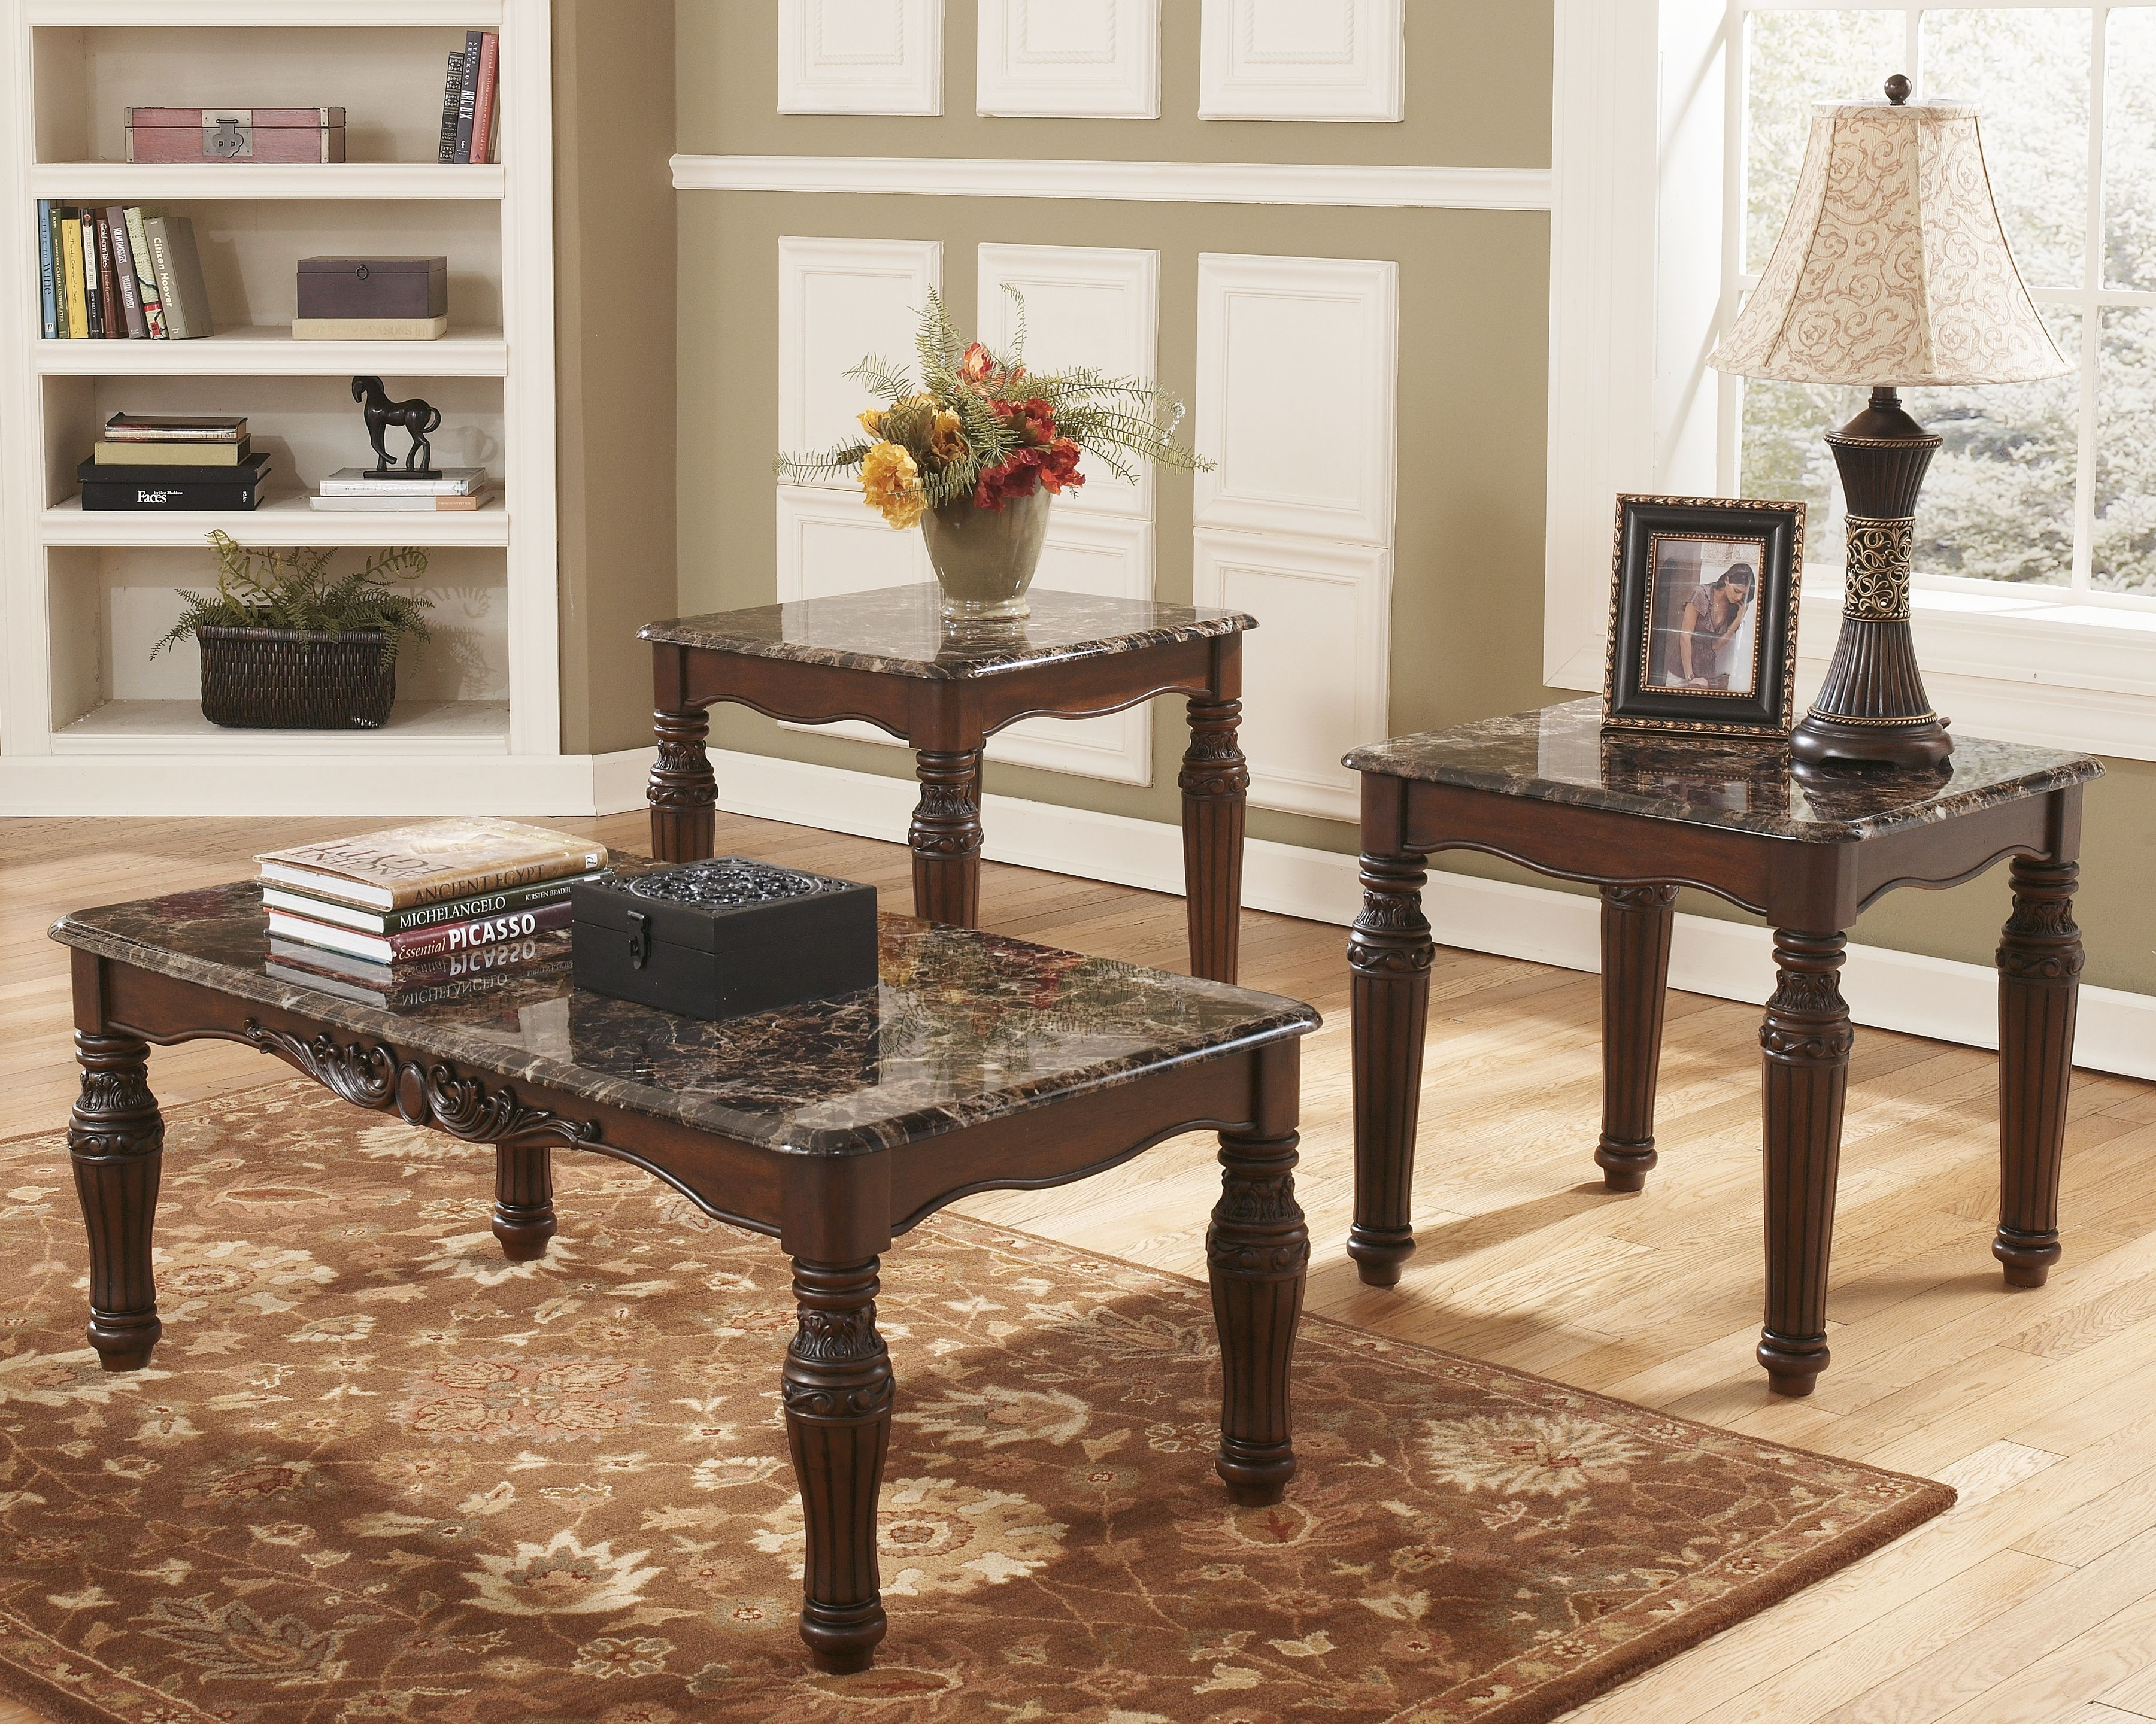 North Shore Table Set Of 3 Ashley Furniture Homestore In 2021 Marble Coffee Table Set Furniture Coffee Table [ 2880 x 3601 Pixel ]